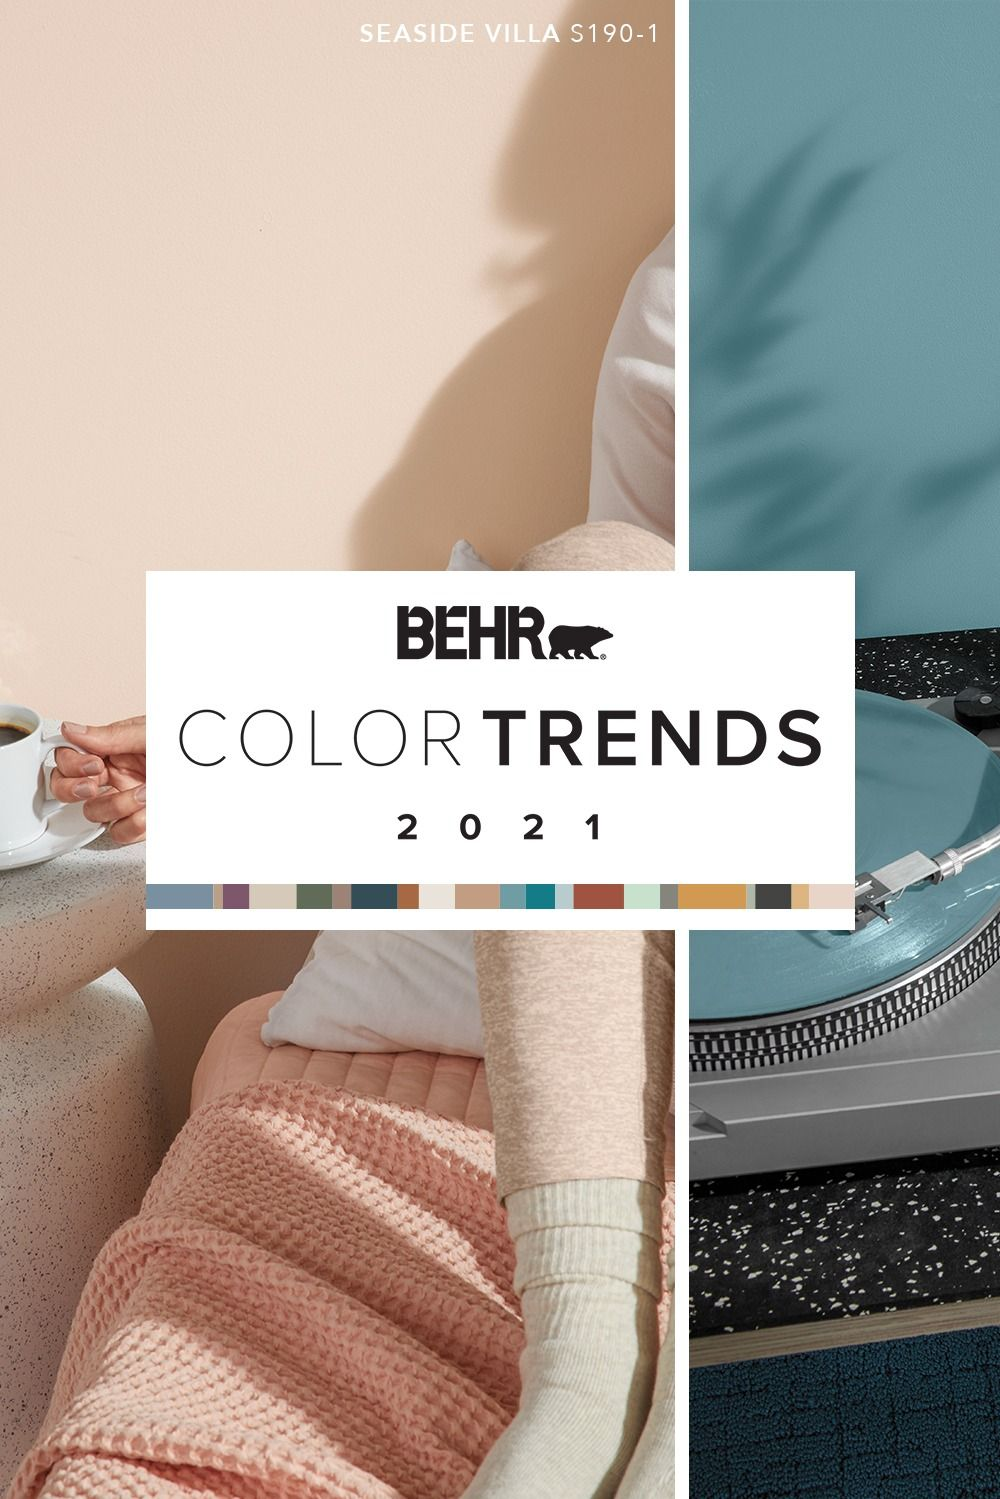 behr color trends 2021 palette in 2020 behr color on paint color trends 2021 id=16595